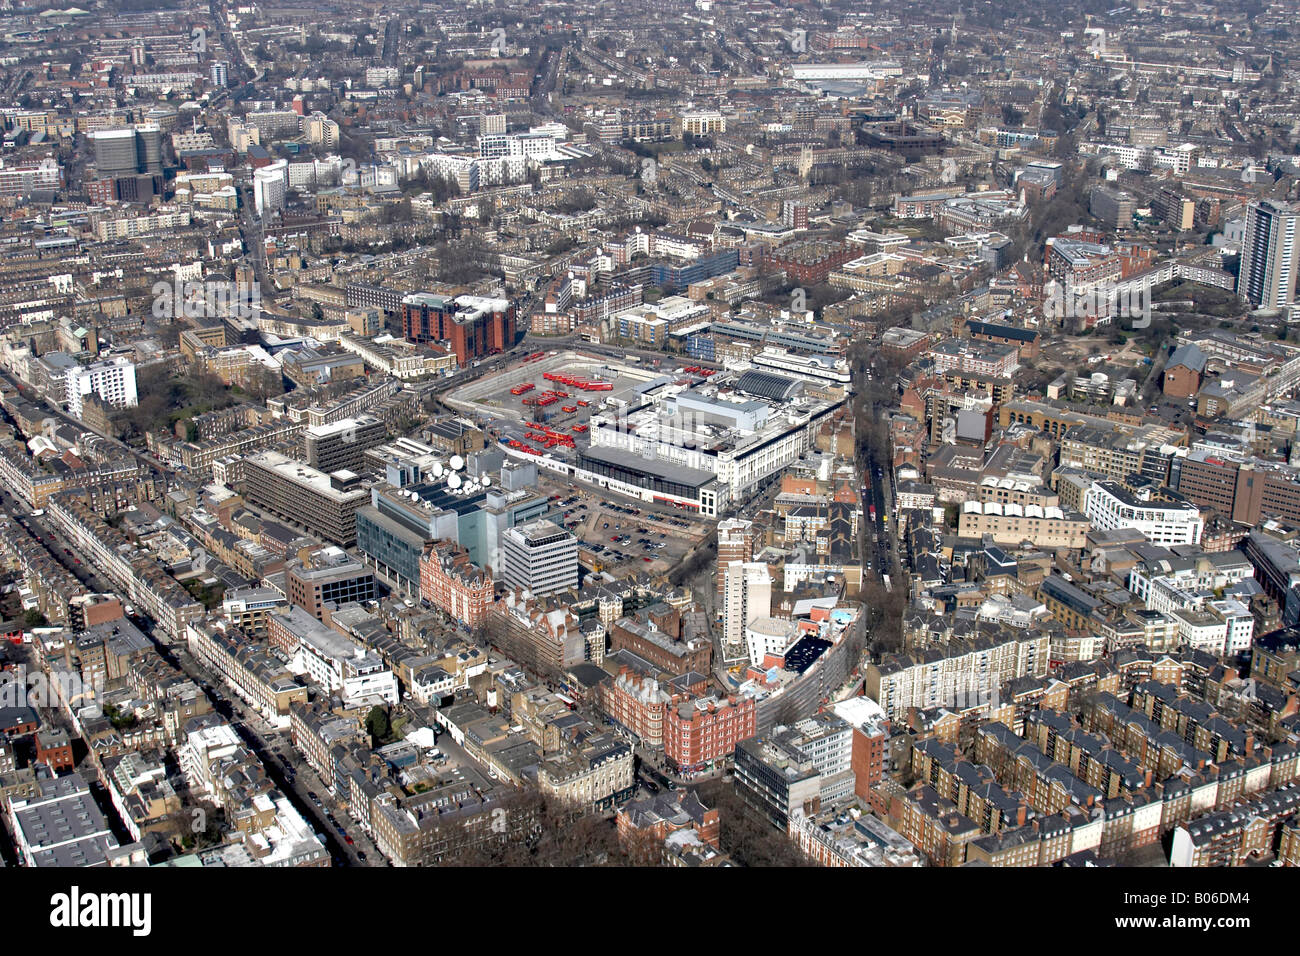 Aerial view north of British Postal Museum and Archive Phoenix Place Islington London EC1 England UK High level - Stock Image